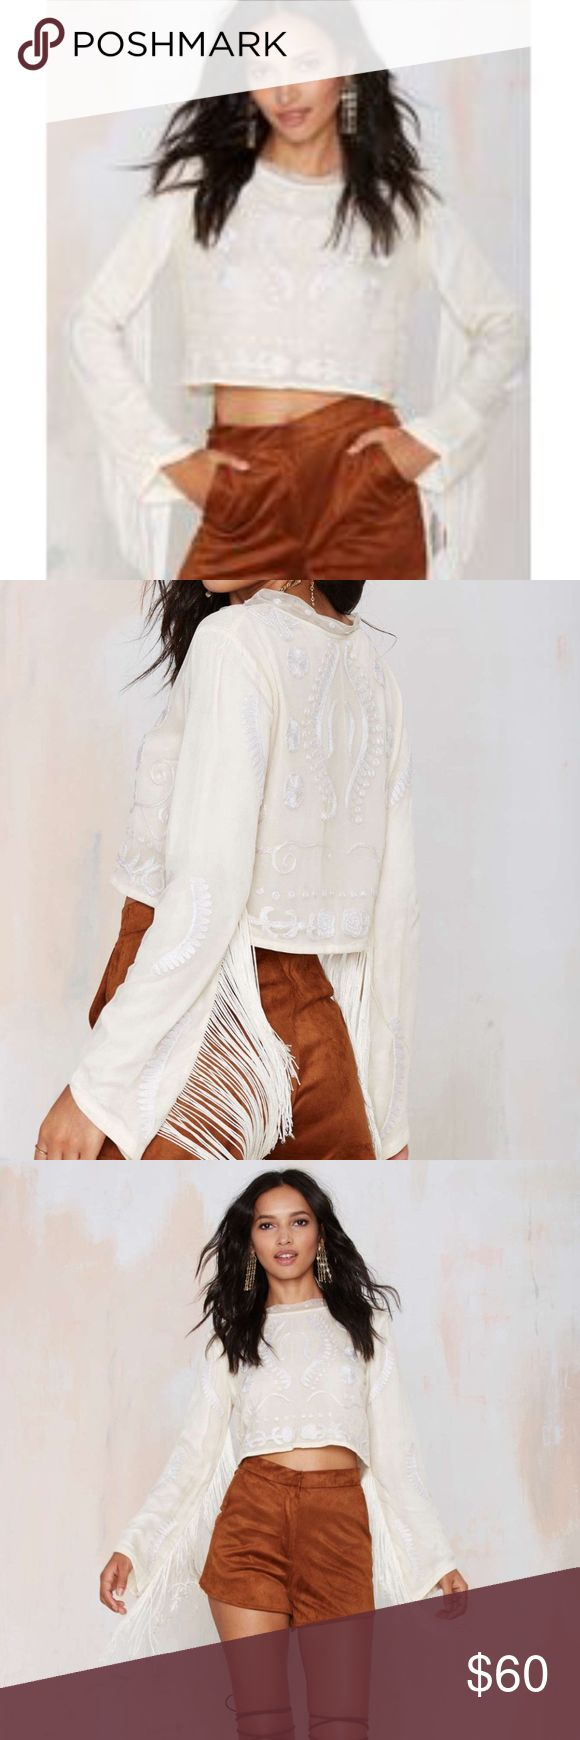 Bohemian Bones Witchy Woman Embroidered Crop Top The Witchy Woman Top is beige and features cream embroidery, mesh overlay, fringe detail, and cropped length. Fully lined. . By Bohemian Bones.  *Viscose *Runs true to size *Dry clean *Imported  no trades/modeling Nasty Gal Tops Crop Tops